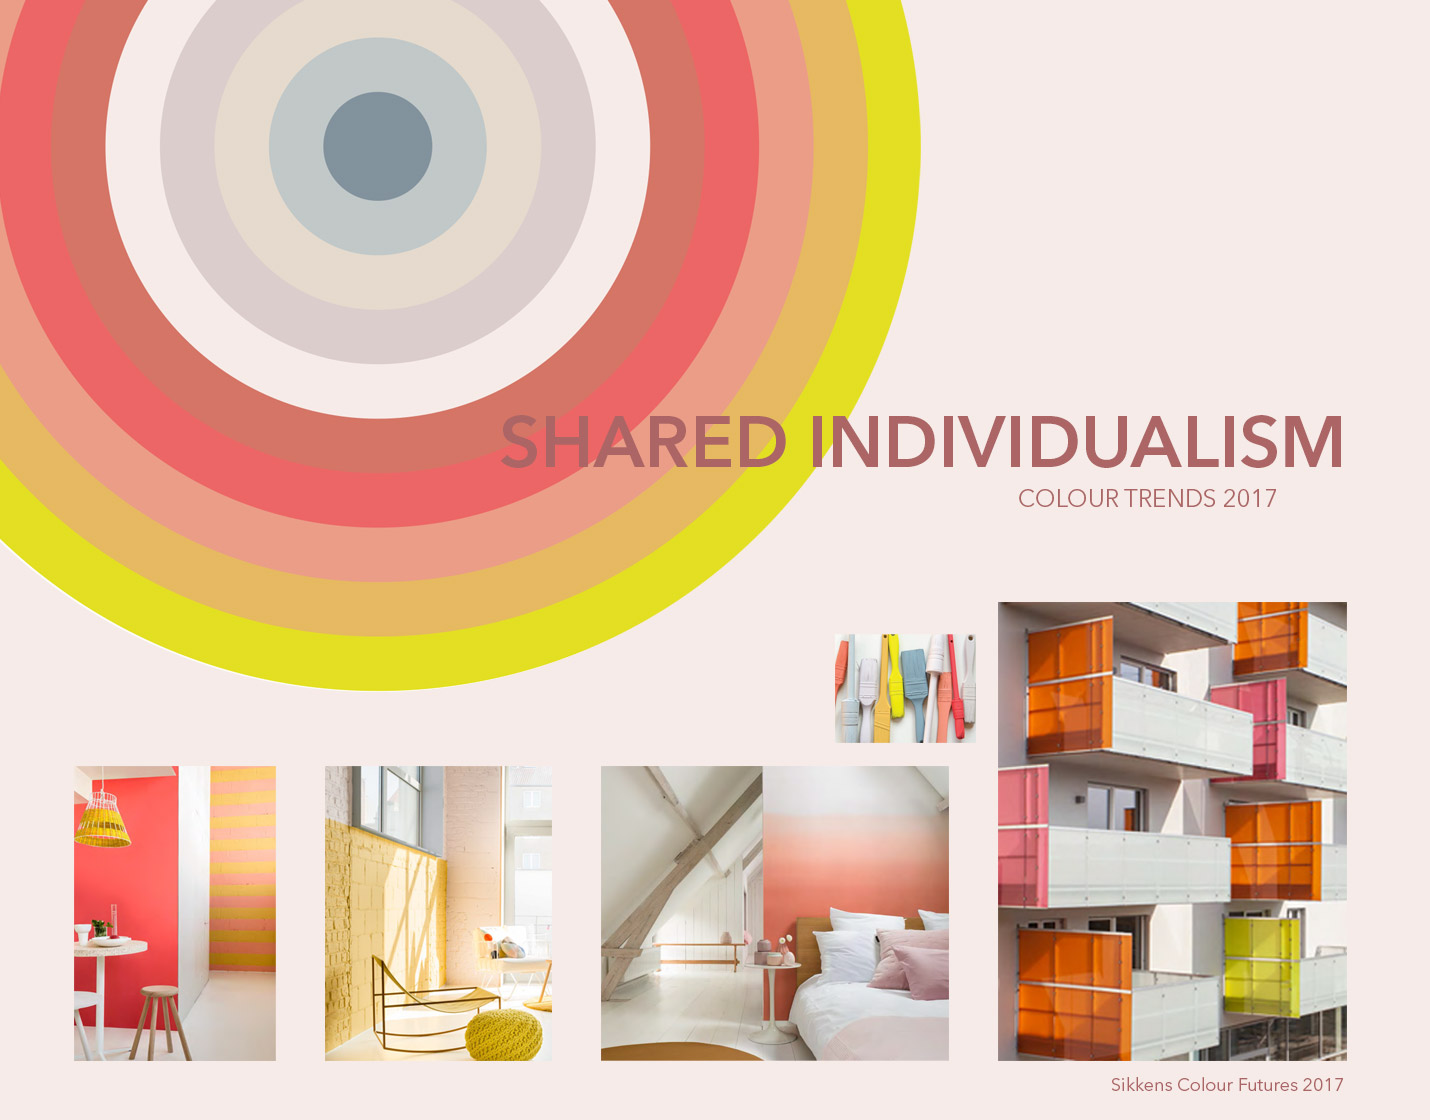 Archicolour - Shared Individualism